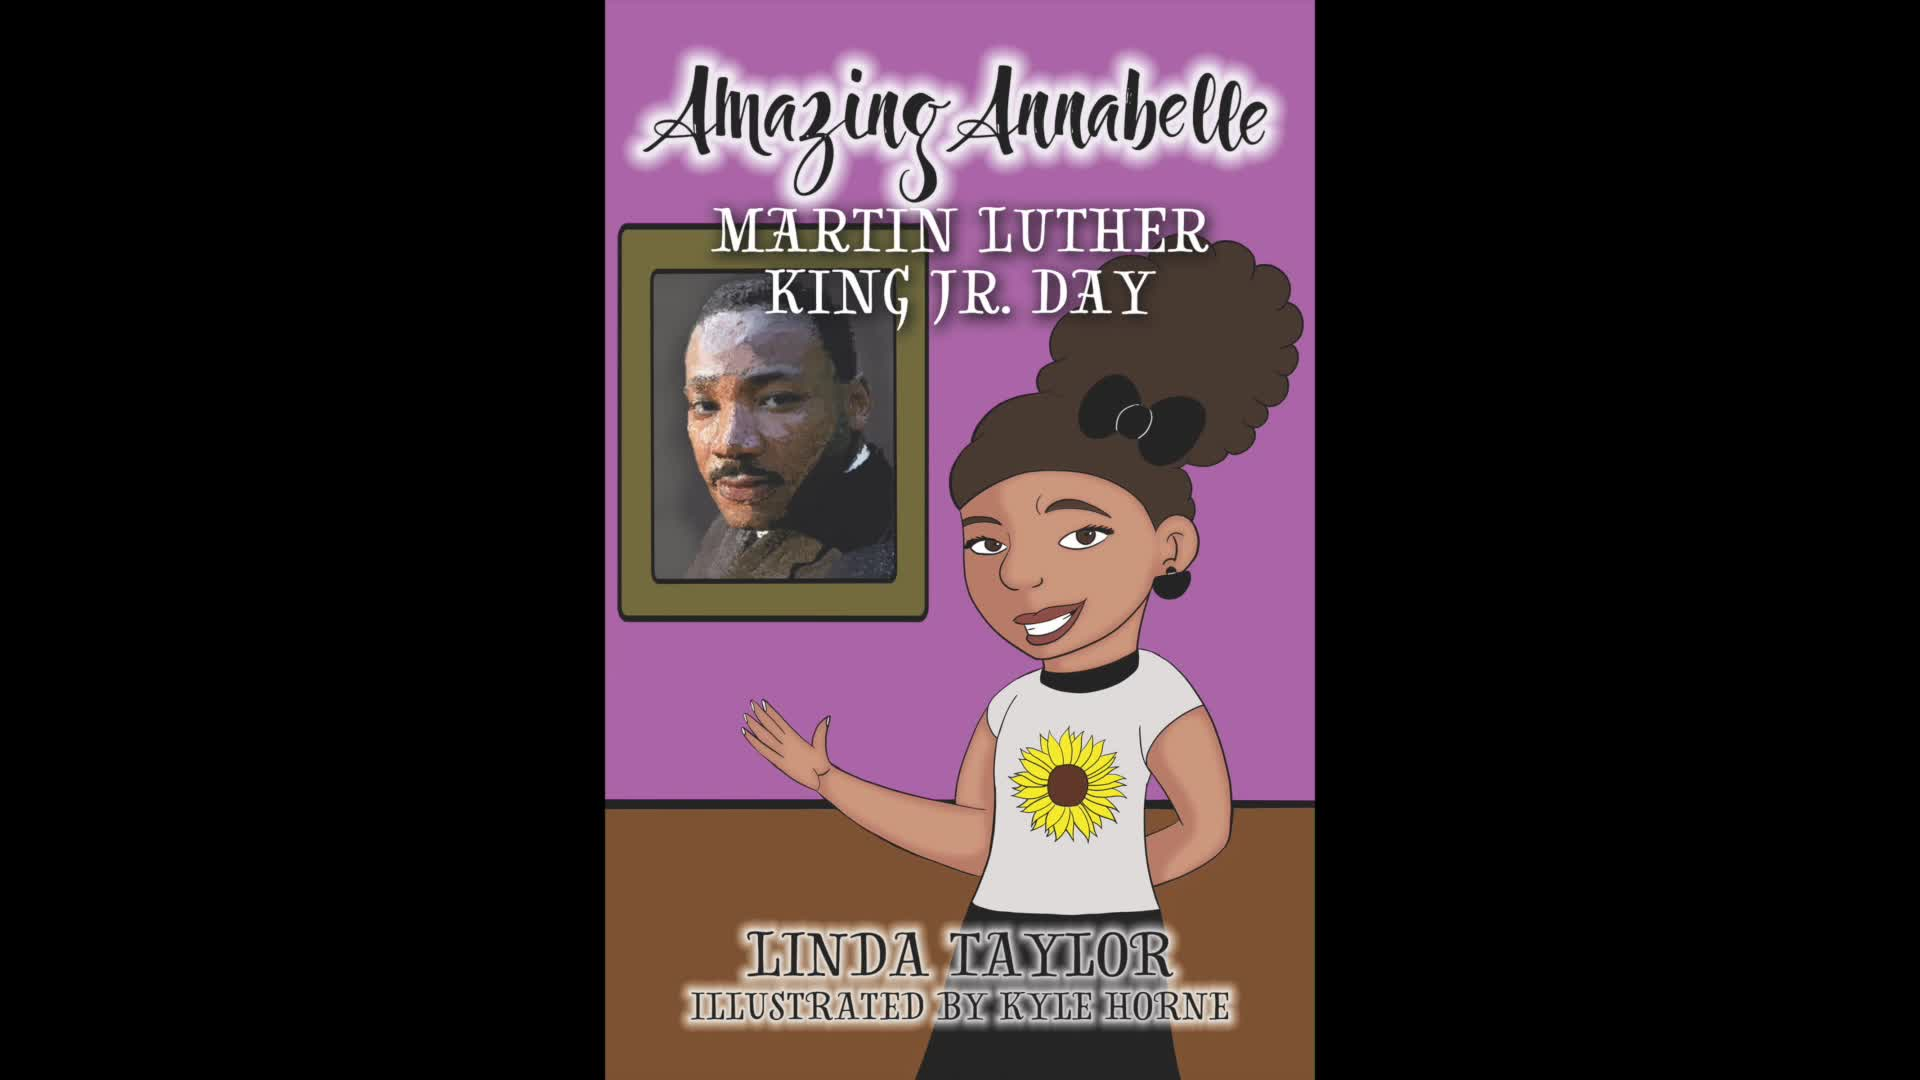 Amazing Annabelle Martin Luther King Jr Day Chapter 9